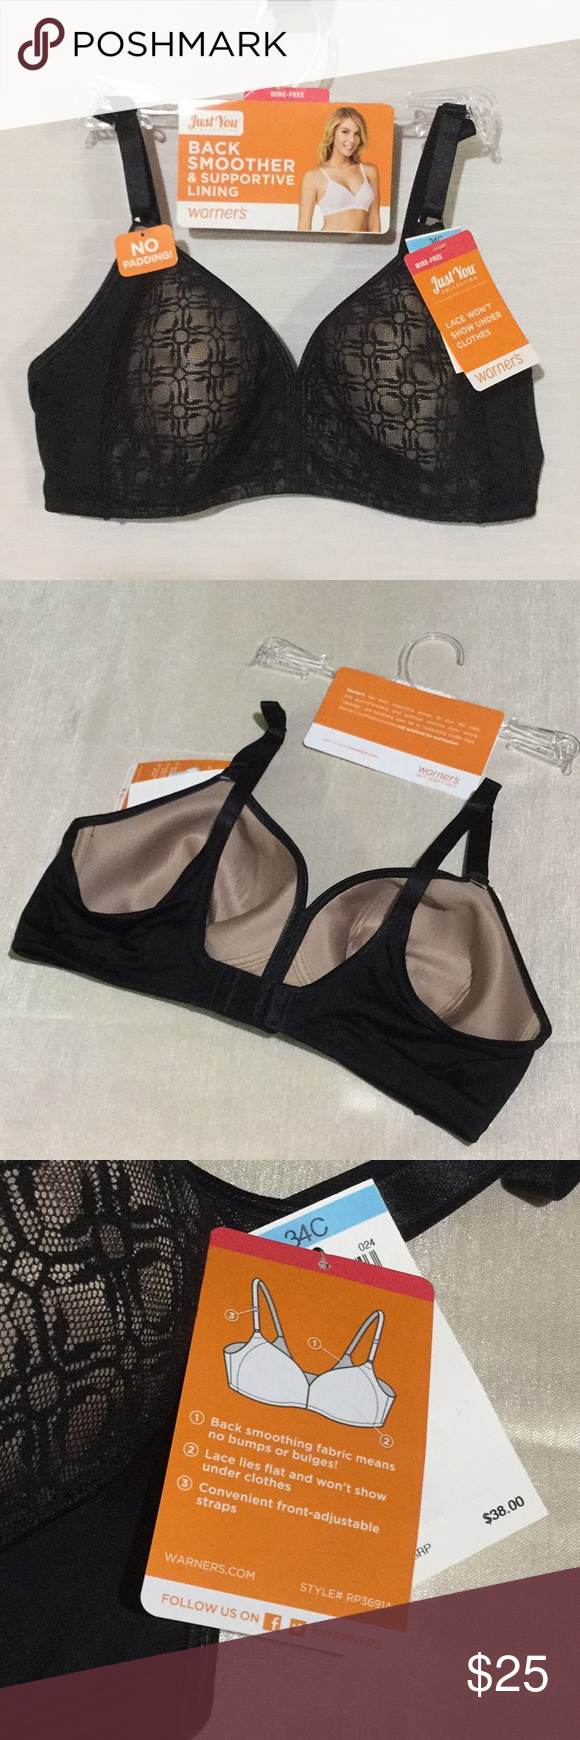 26c8e40a56e77 Warner s Just You Collection Unlined Wire-Free Bra Warner s Just You  Collection Back Smoother